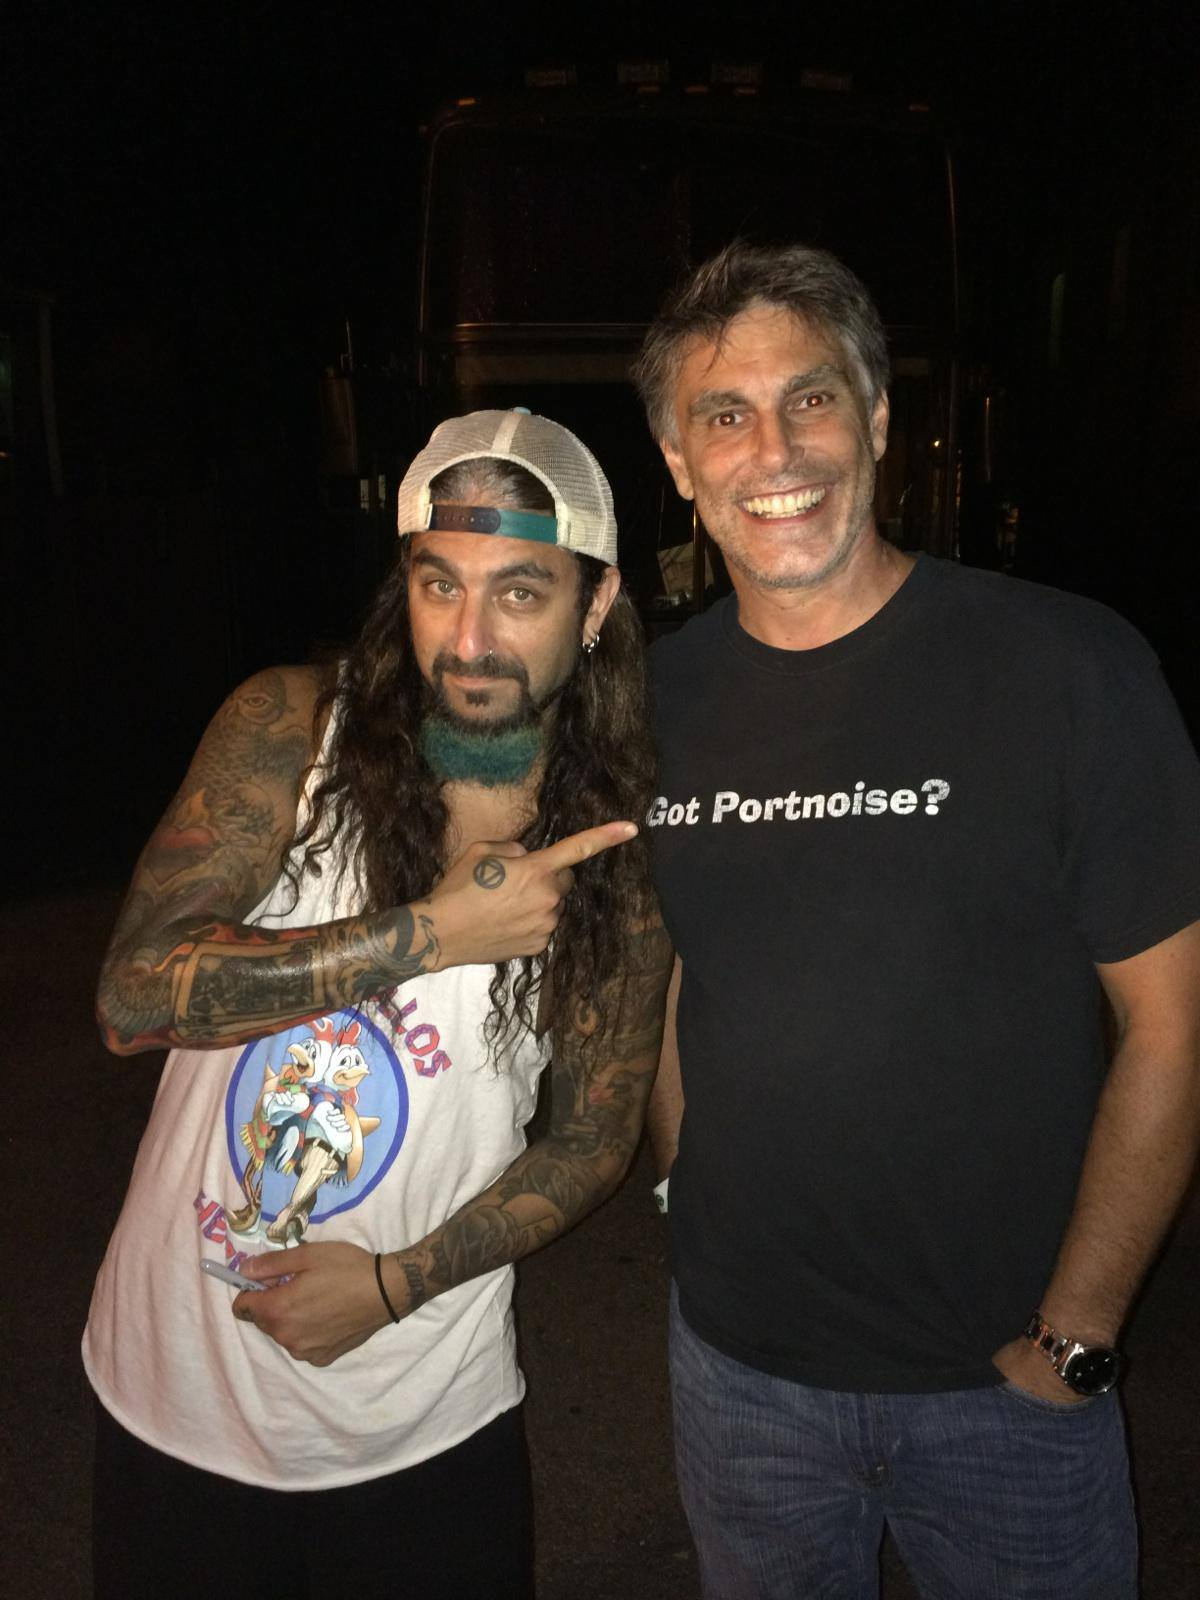 Me and Mike Portnoy